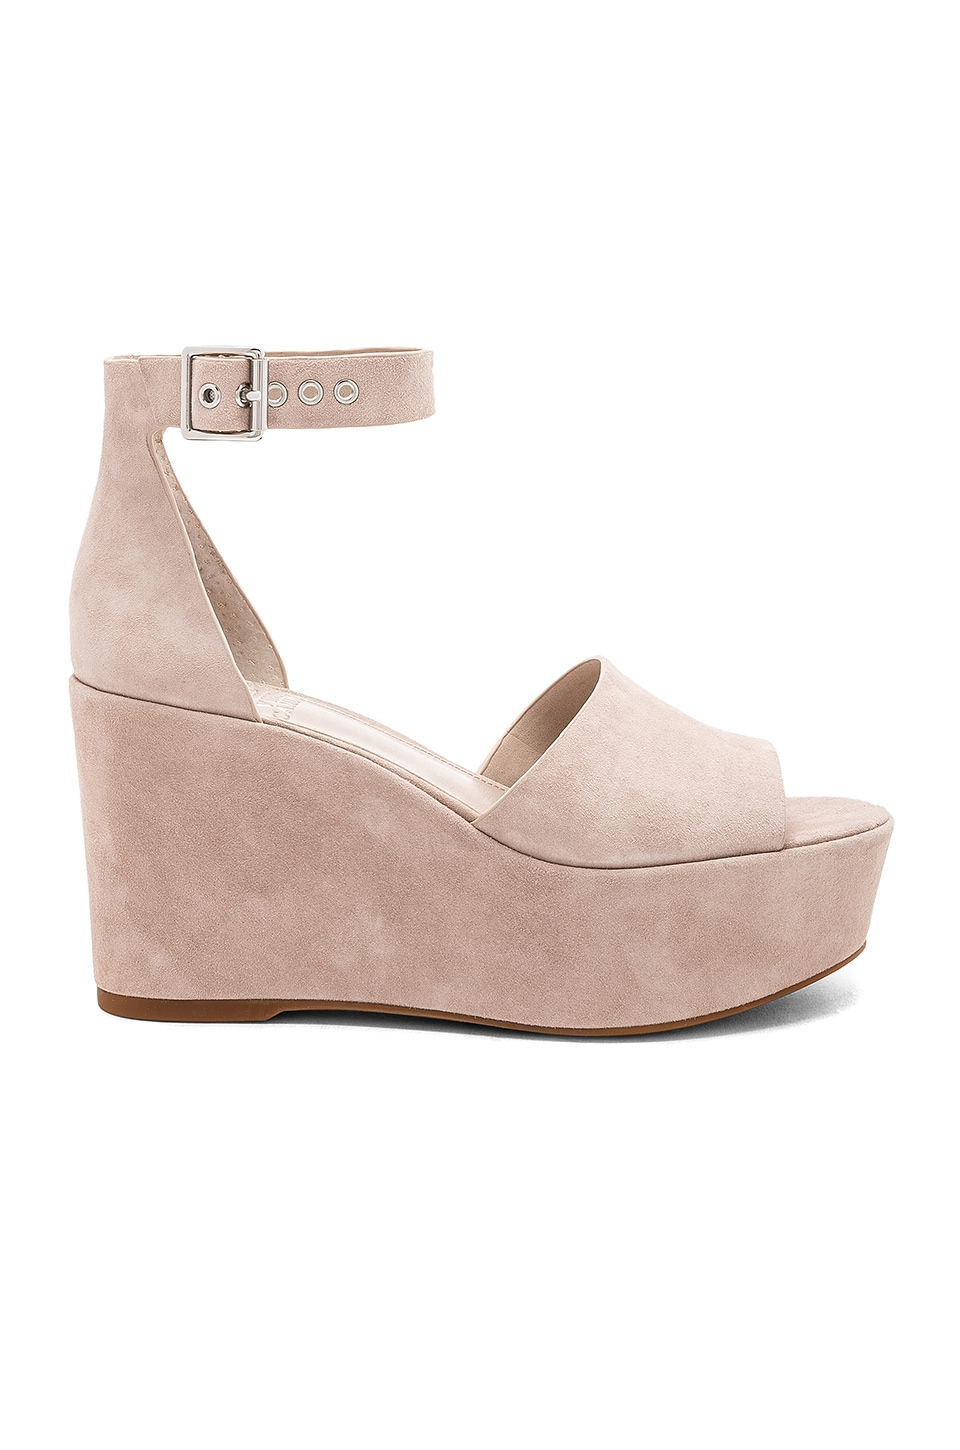 Vince Camuto Korista Wedge in Tipsy Taupe